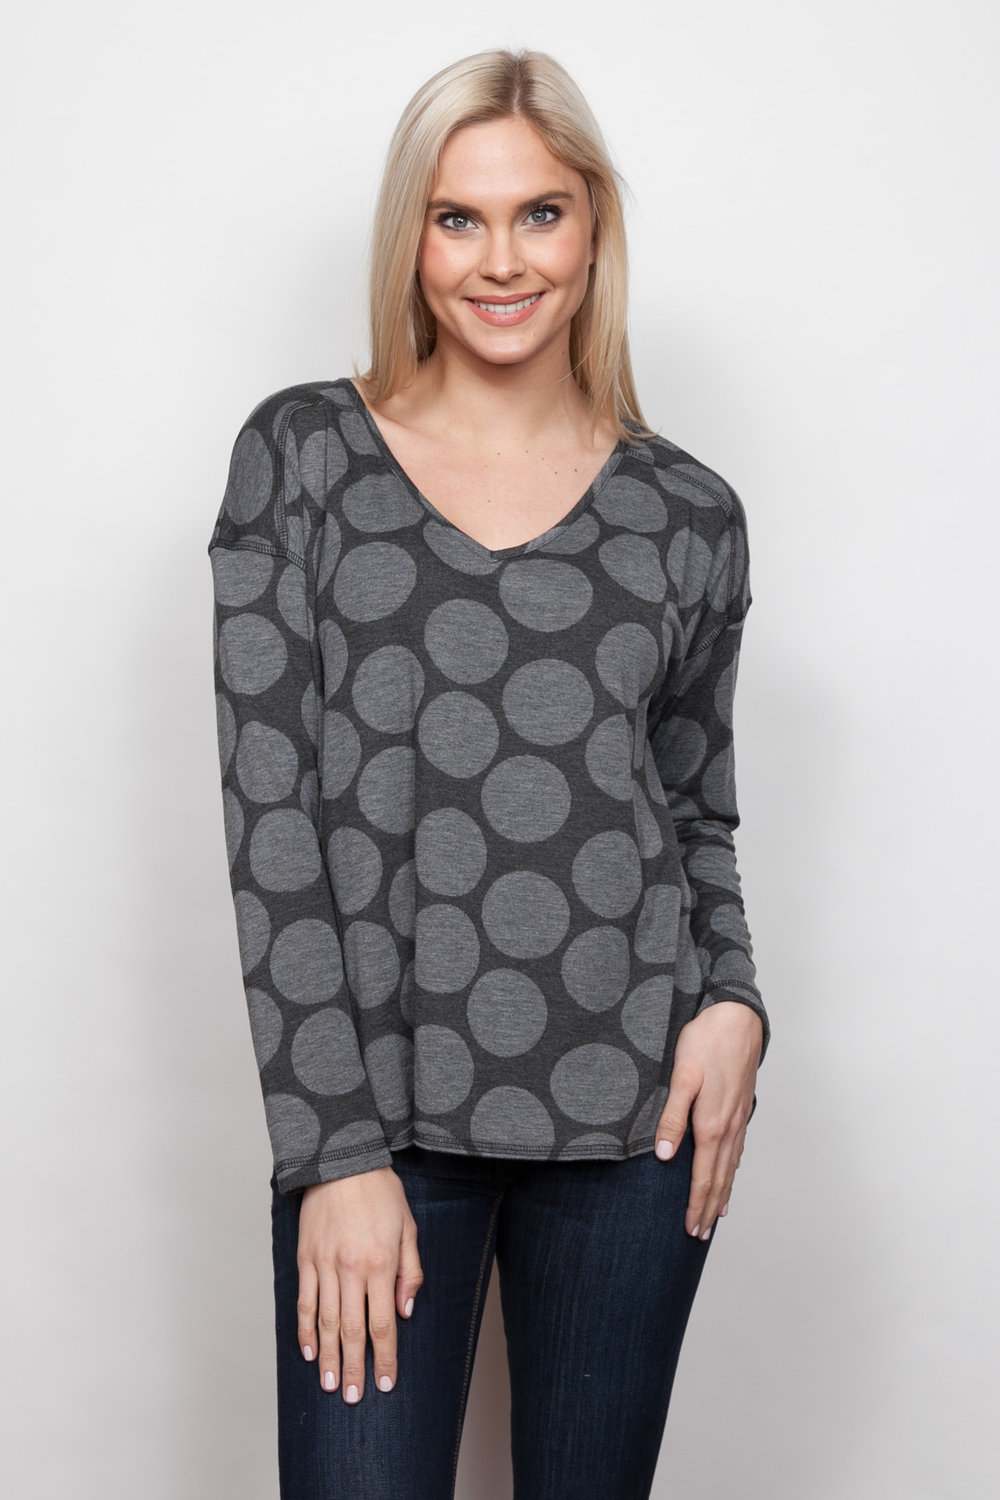 Copy of Style # 85438-18, p 5 </br>Double Faced Large Dot </br>Color: Grey Heather